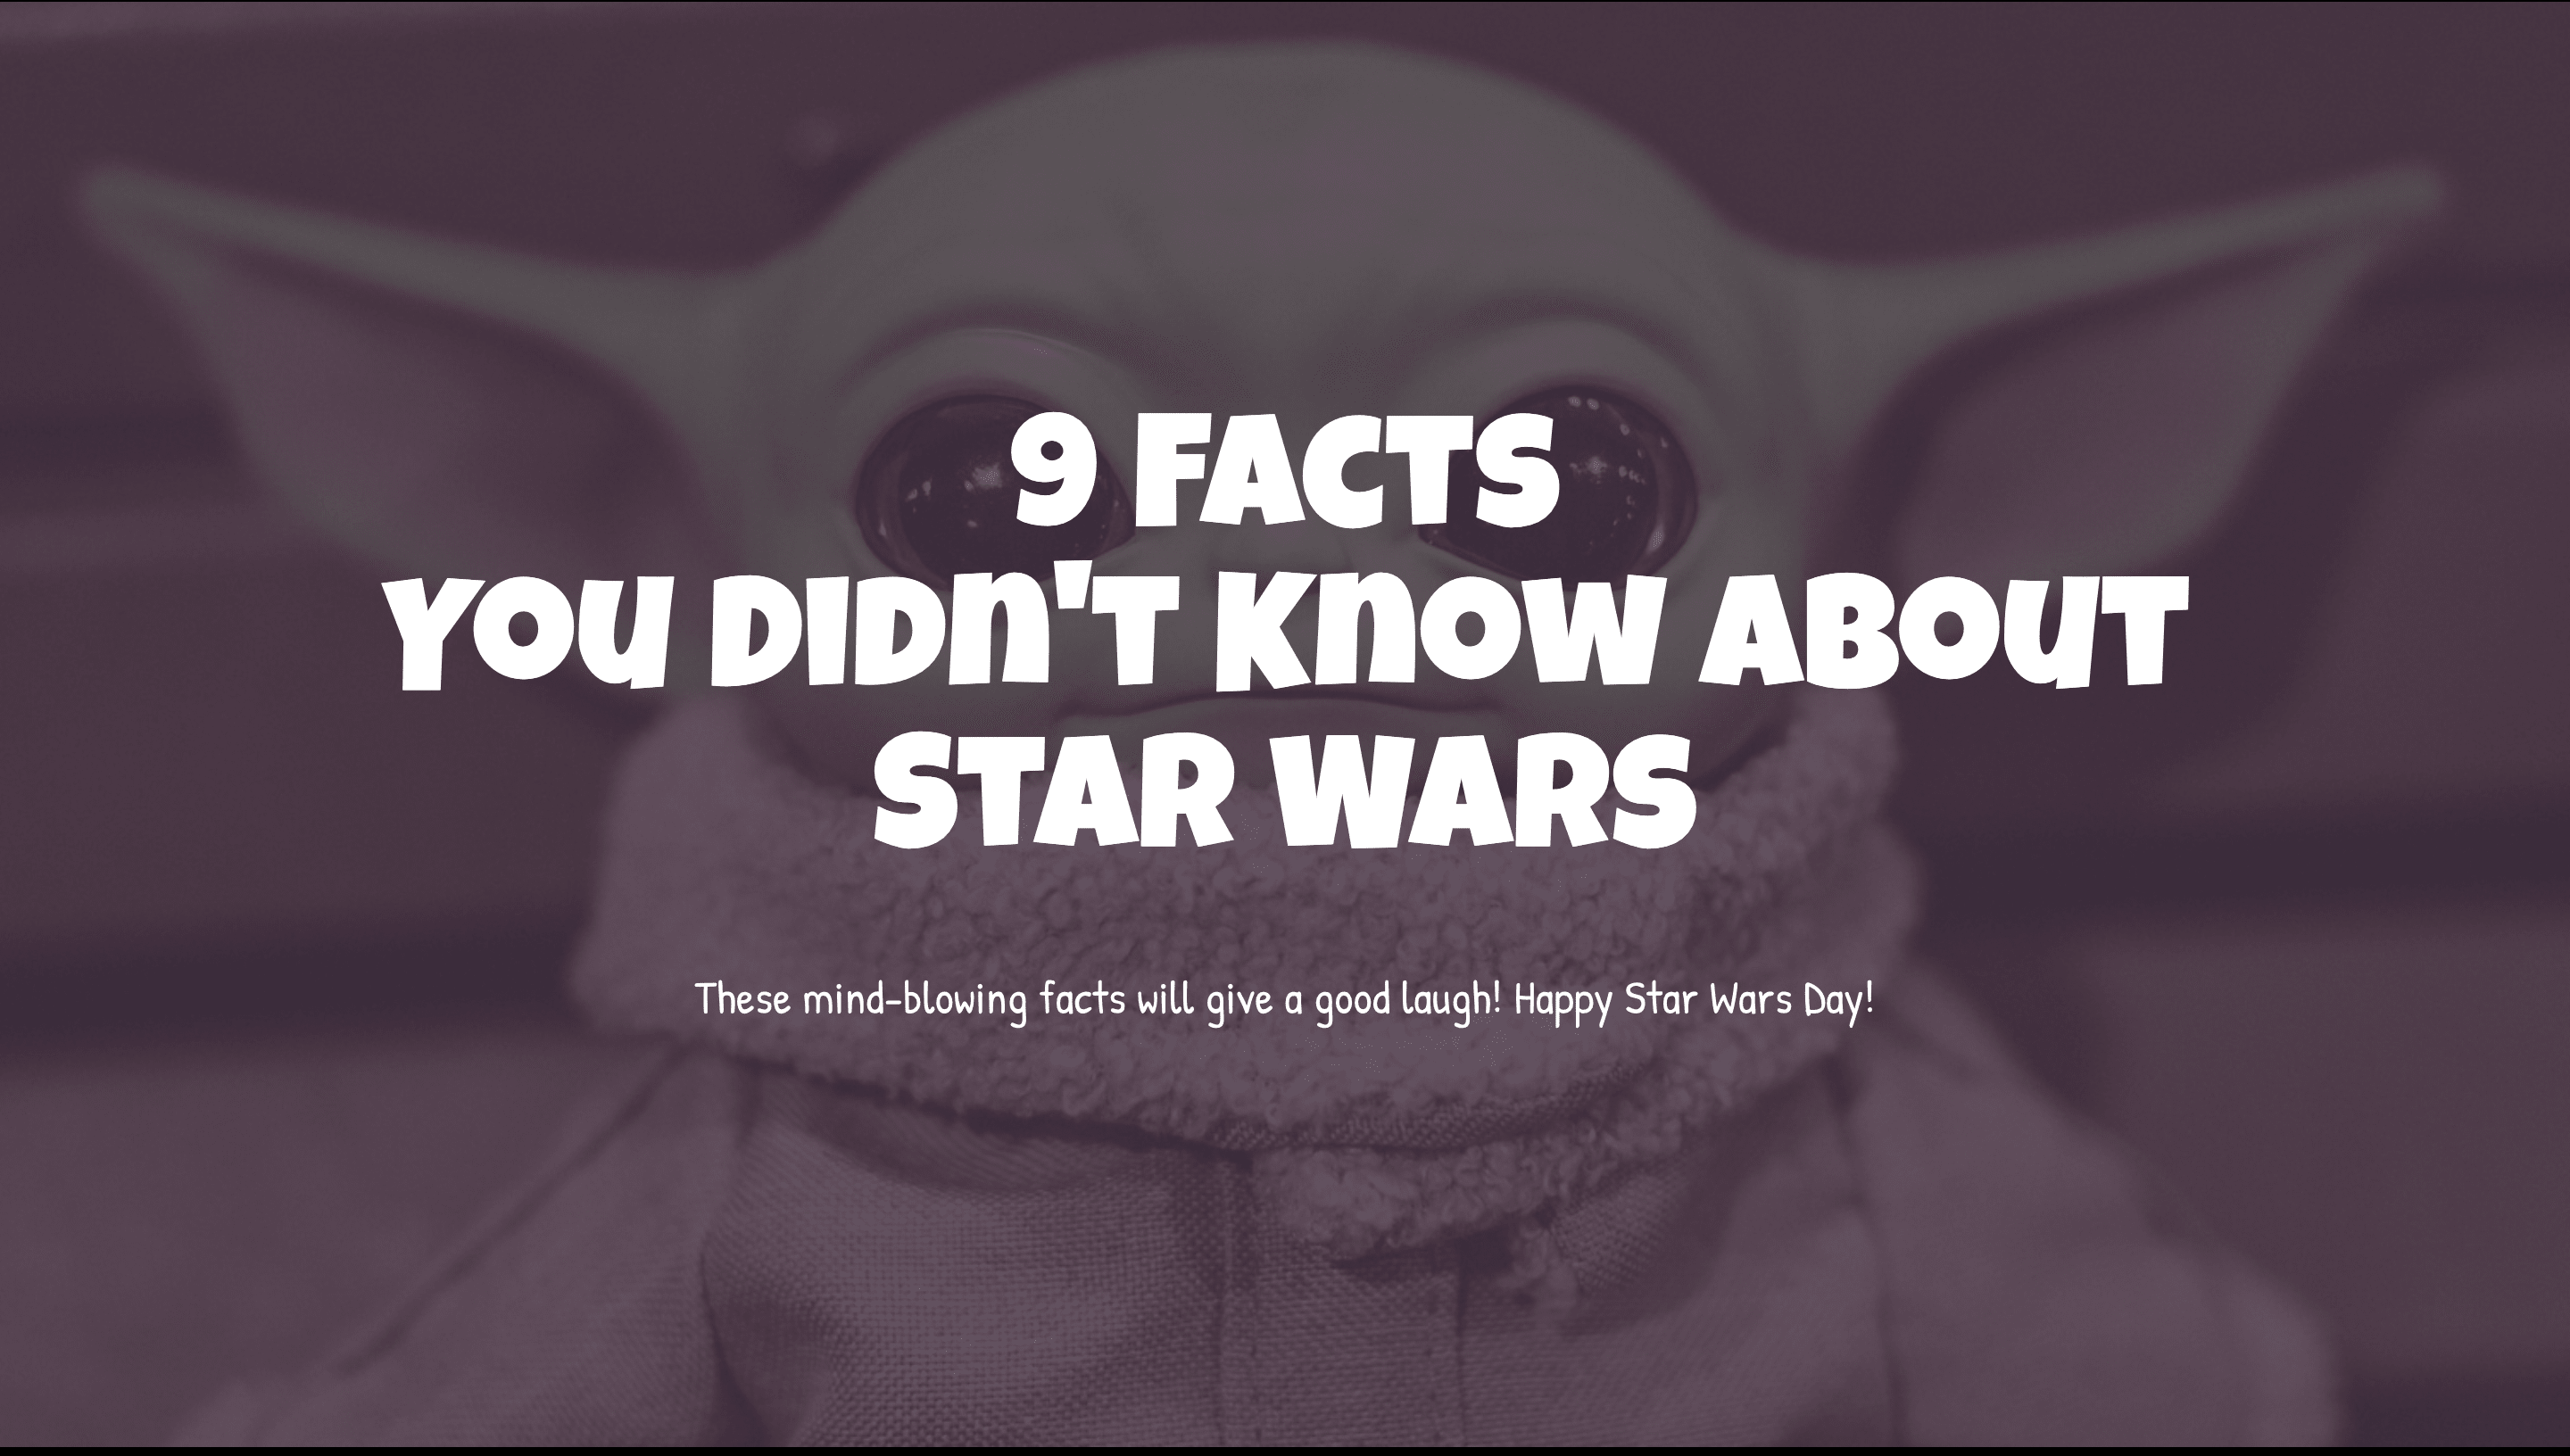 Share this deck with your friends and colleagues that are Star Wars fans for a while! We are sure there are some facts that they didn't know about! Challenge them to guess these facts!